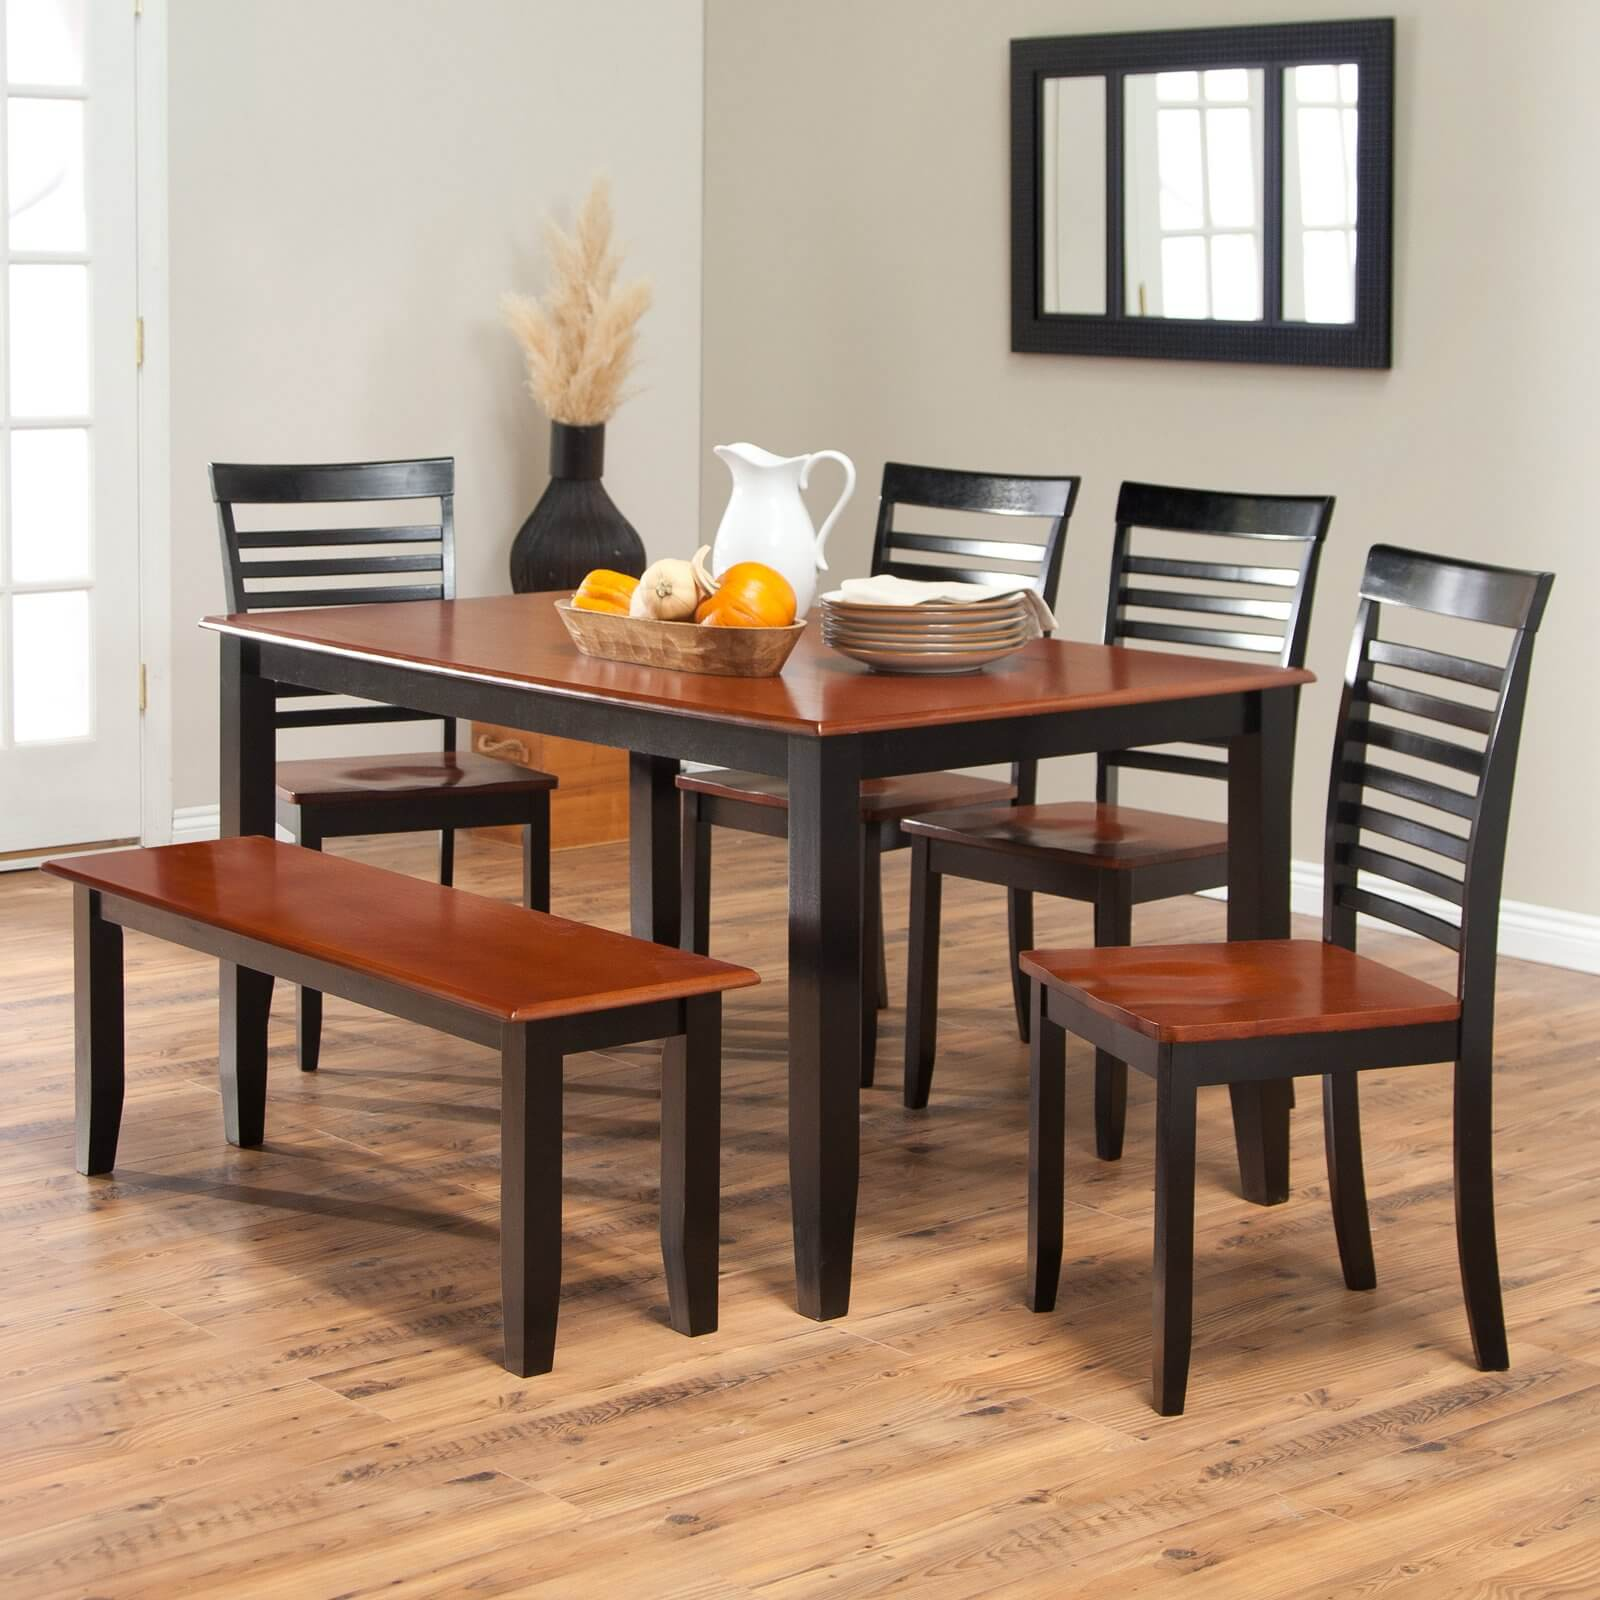 Trestle Dining Room Set